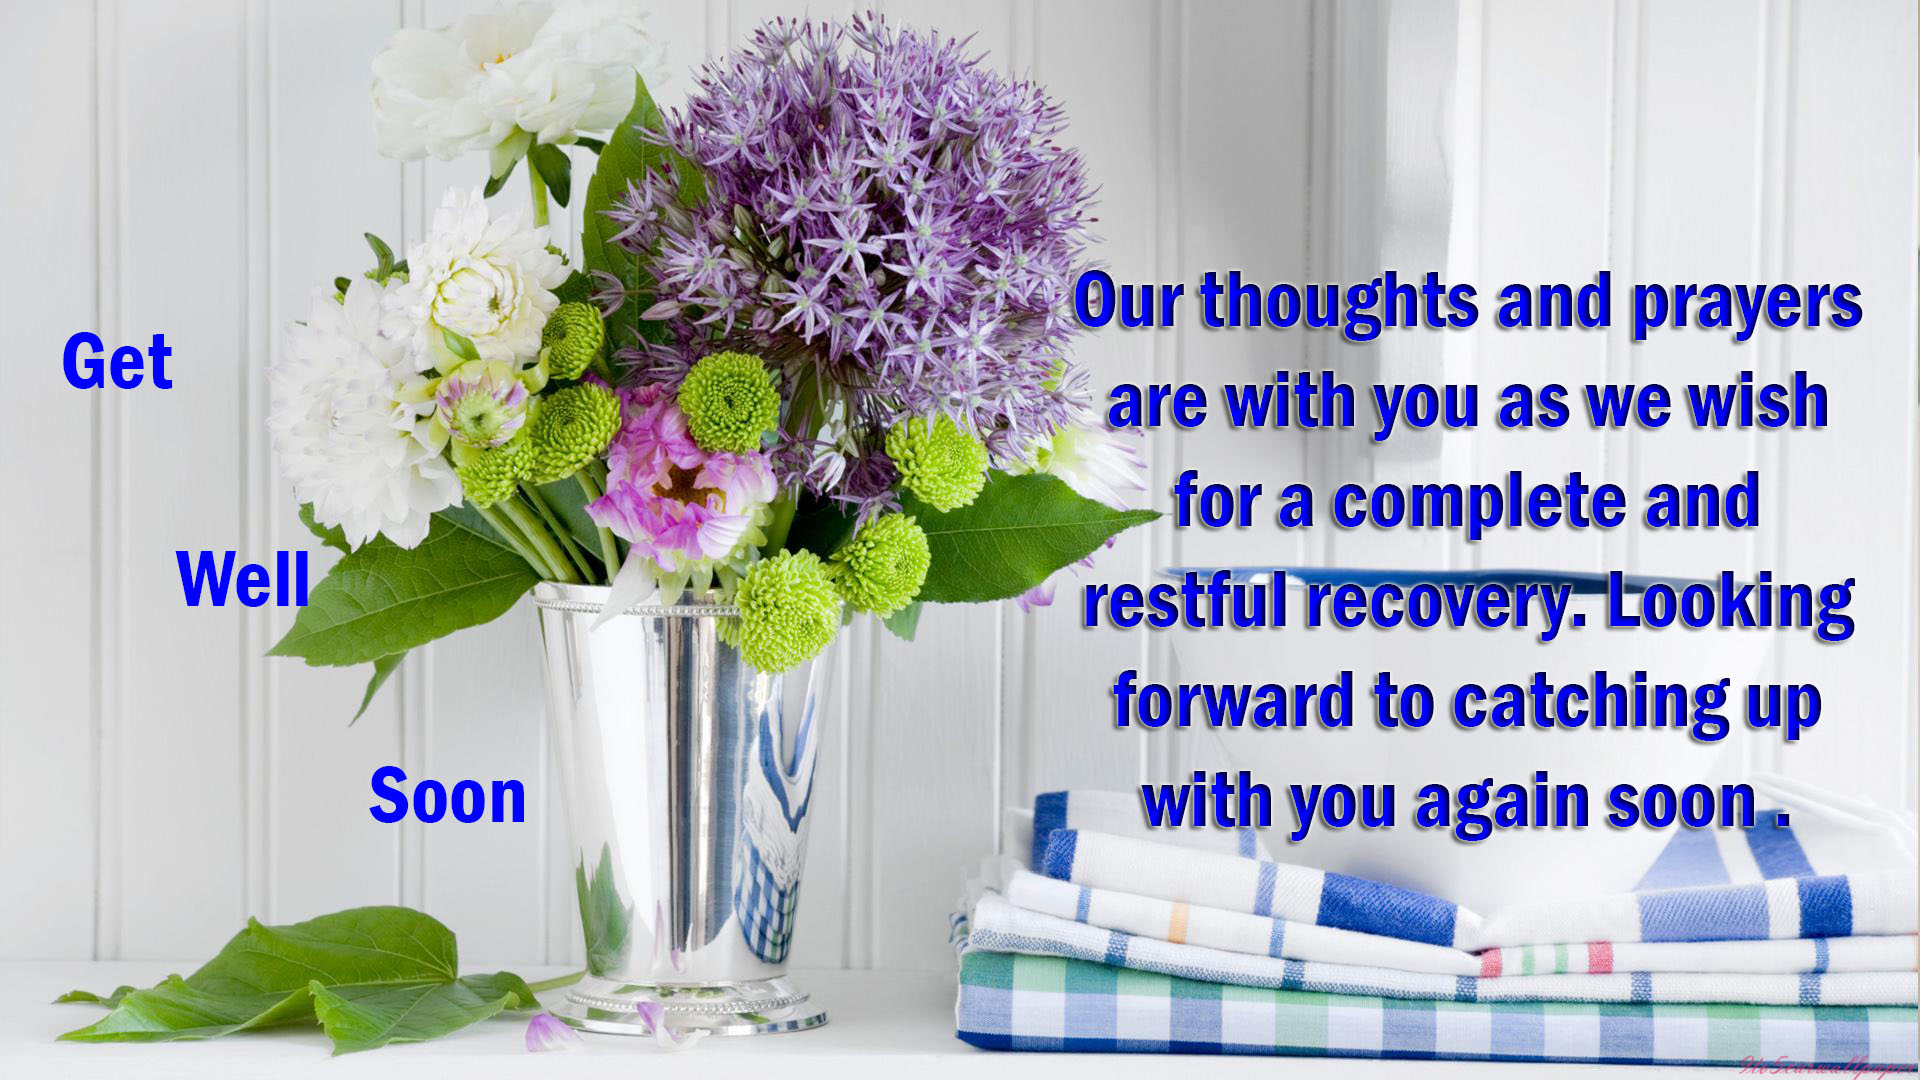 Get Well Soon Quotes Amp Wishes 2018 My Site